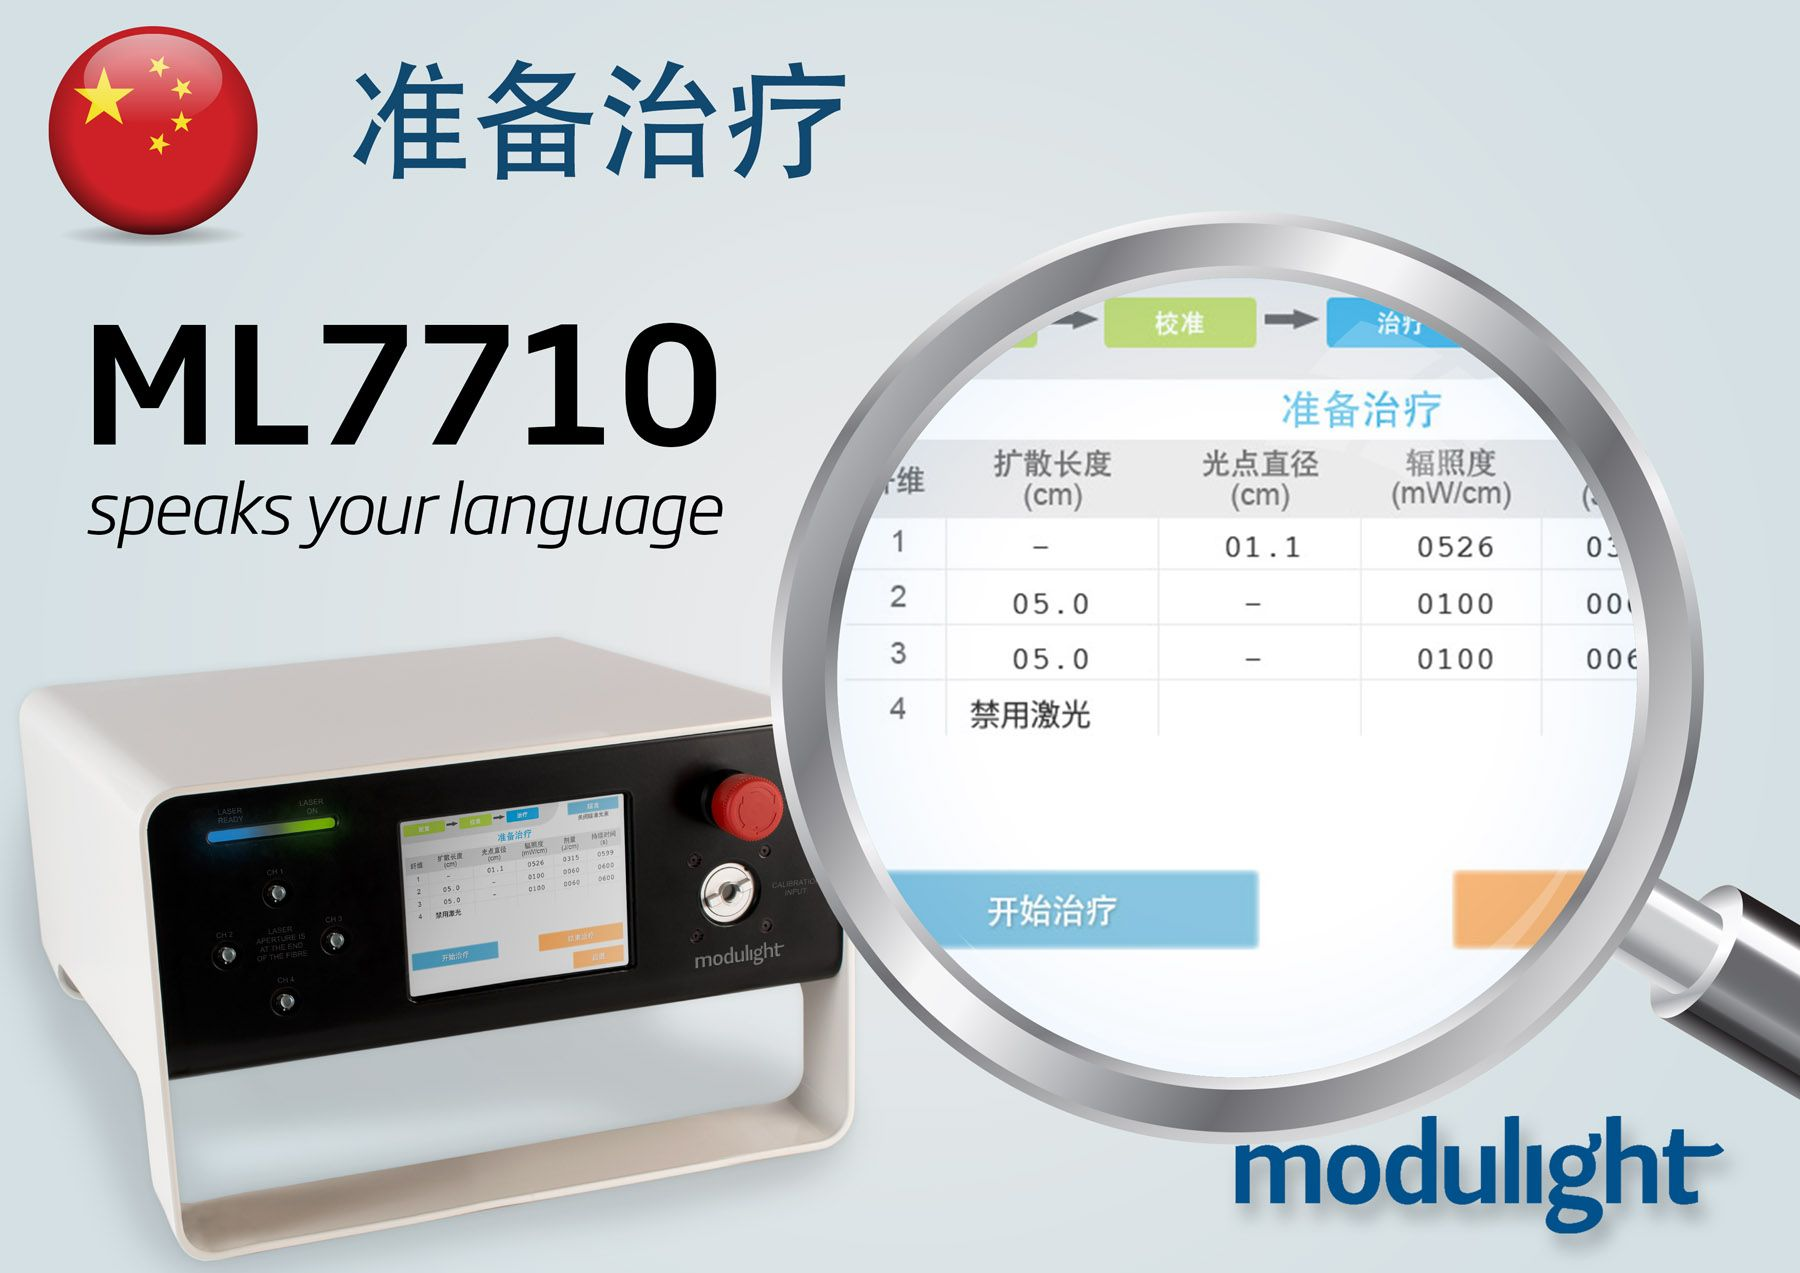 User interface now available in Chinese!